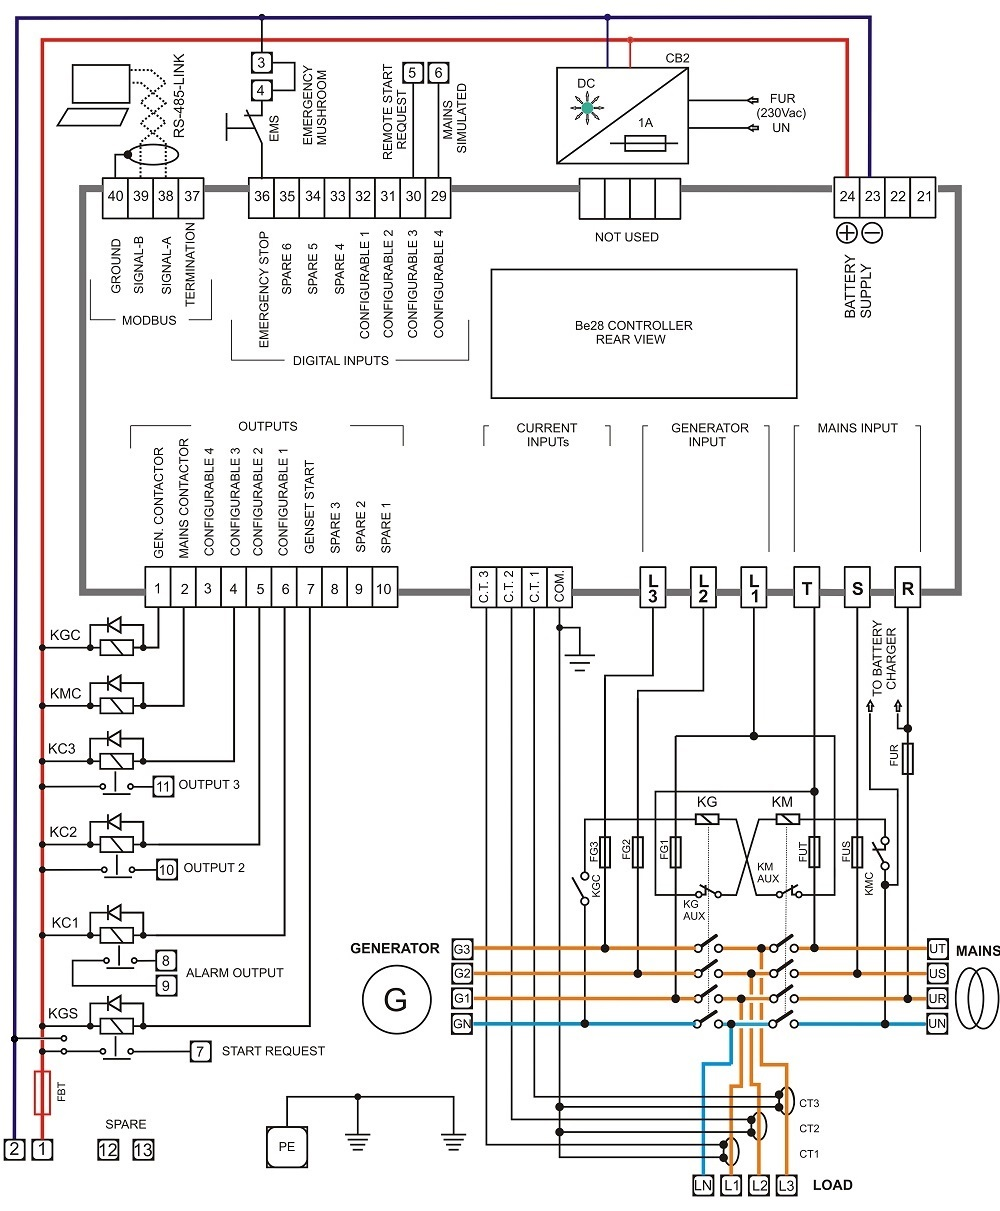 Control Wiring Diagram Of Ats Opinions About Further Rv Solar System Additionally Panel Genset Controller 3 Phase Contactor Model 5070